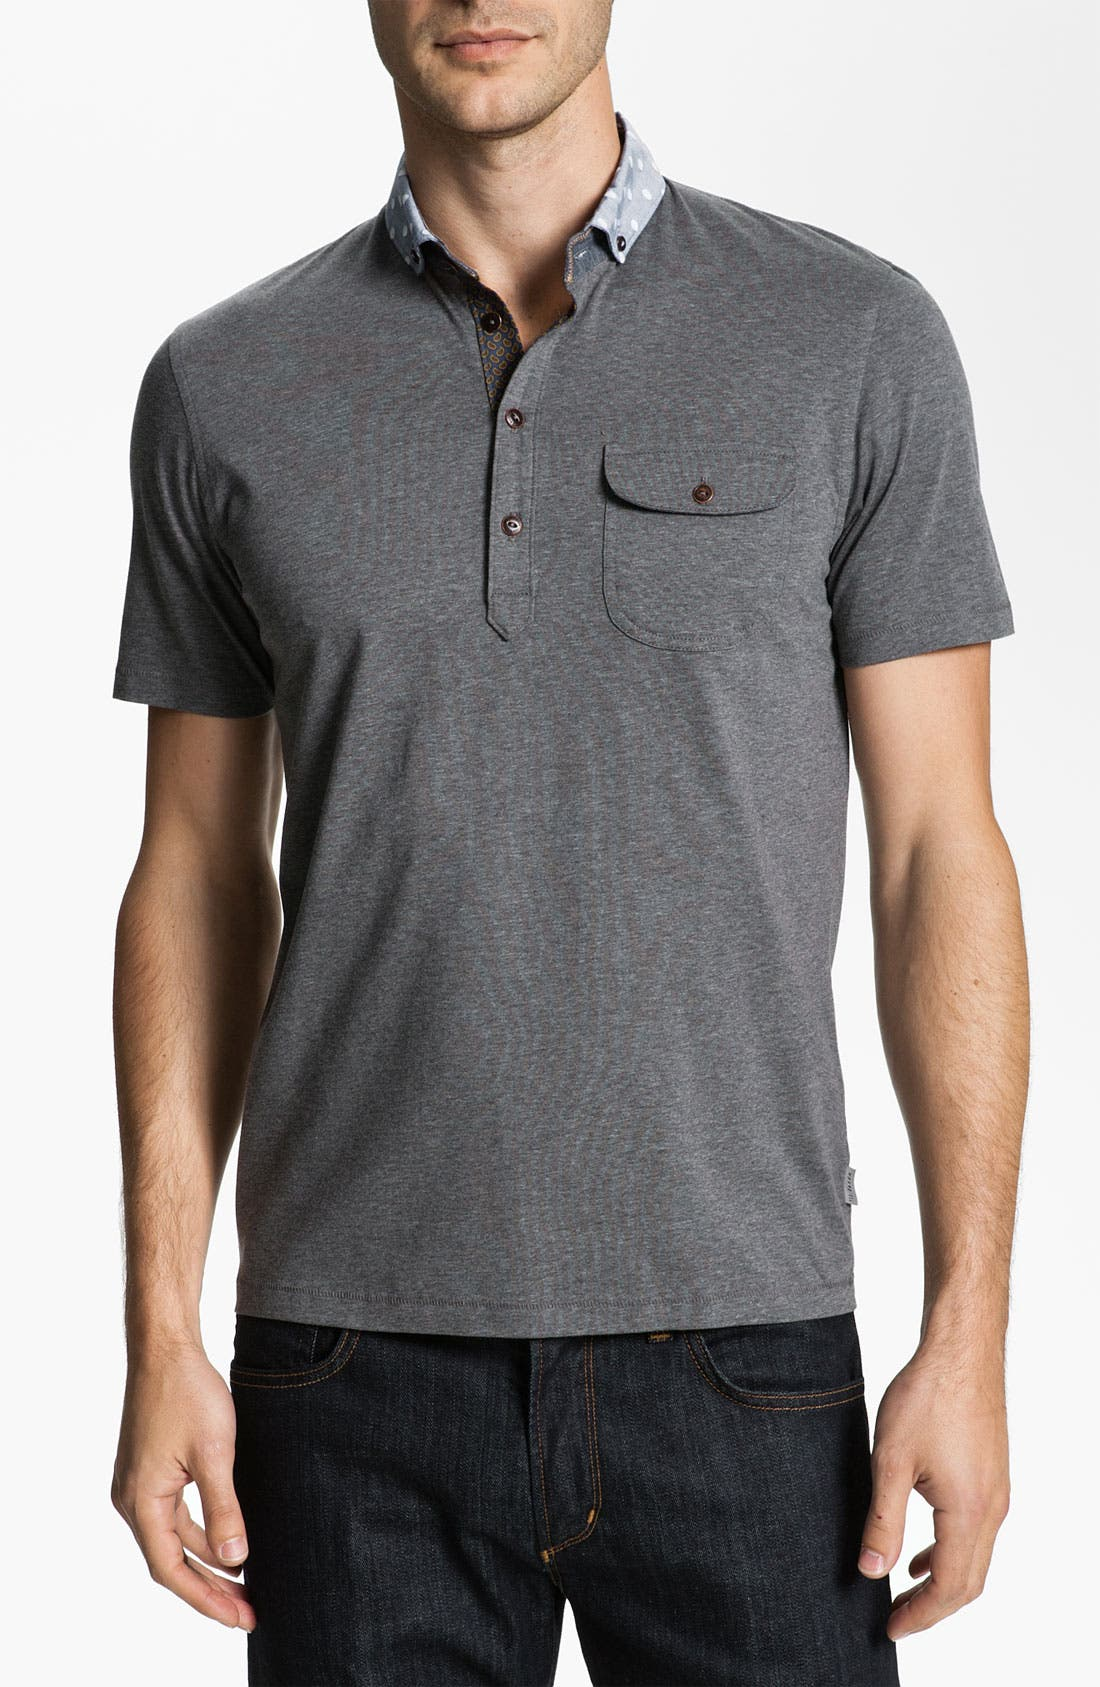 Main Image - Ted Baker London 'Saturdy' Woven Collar Polo